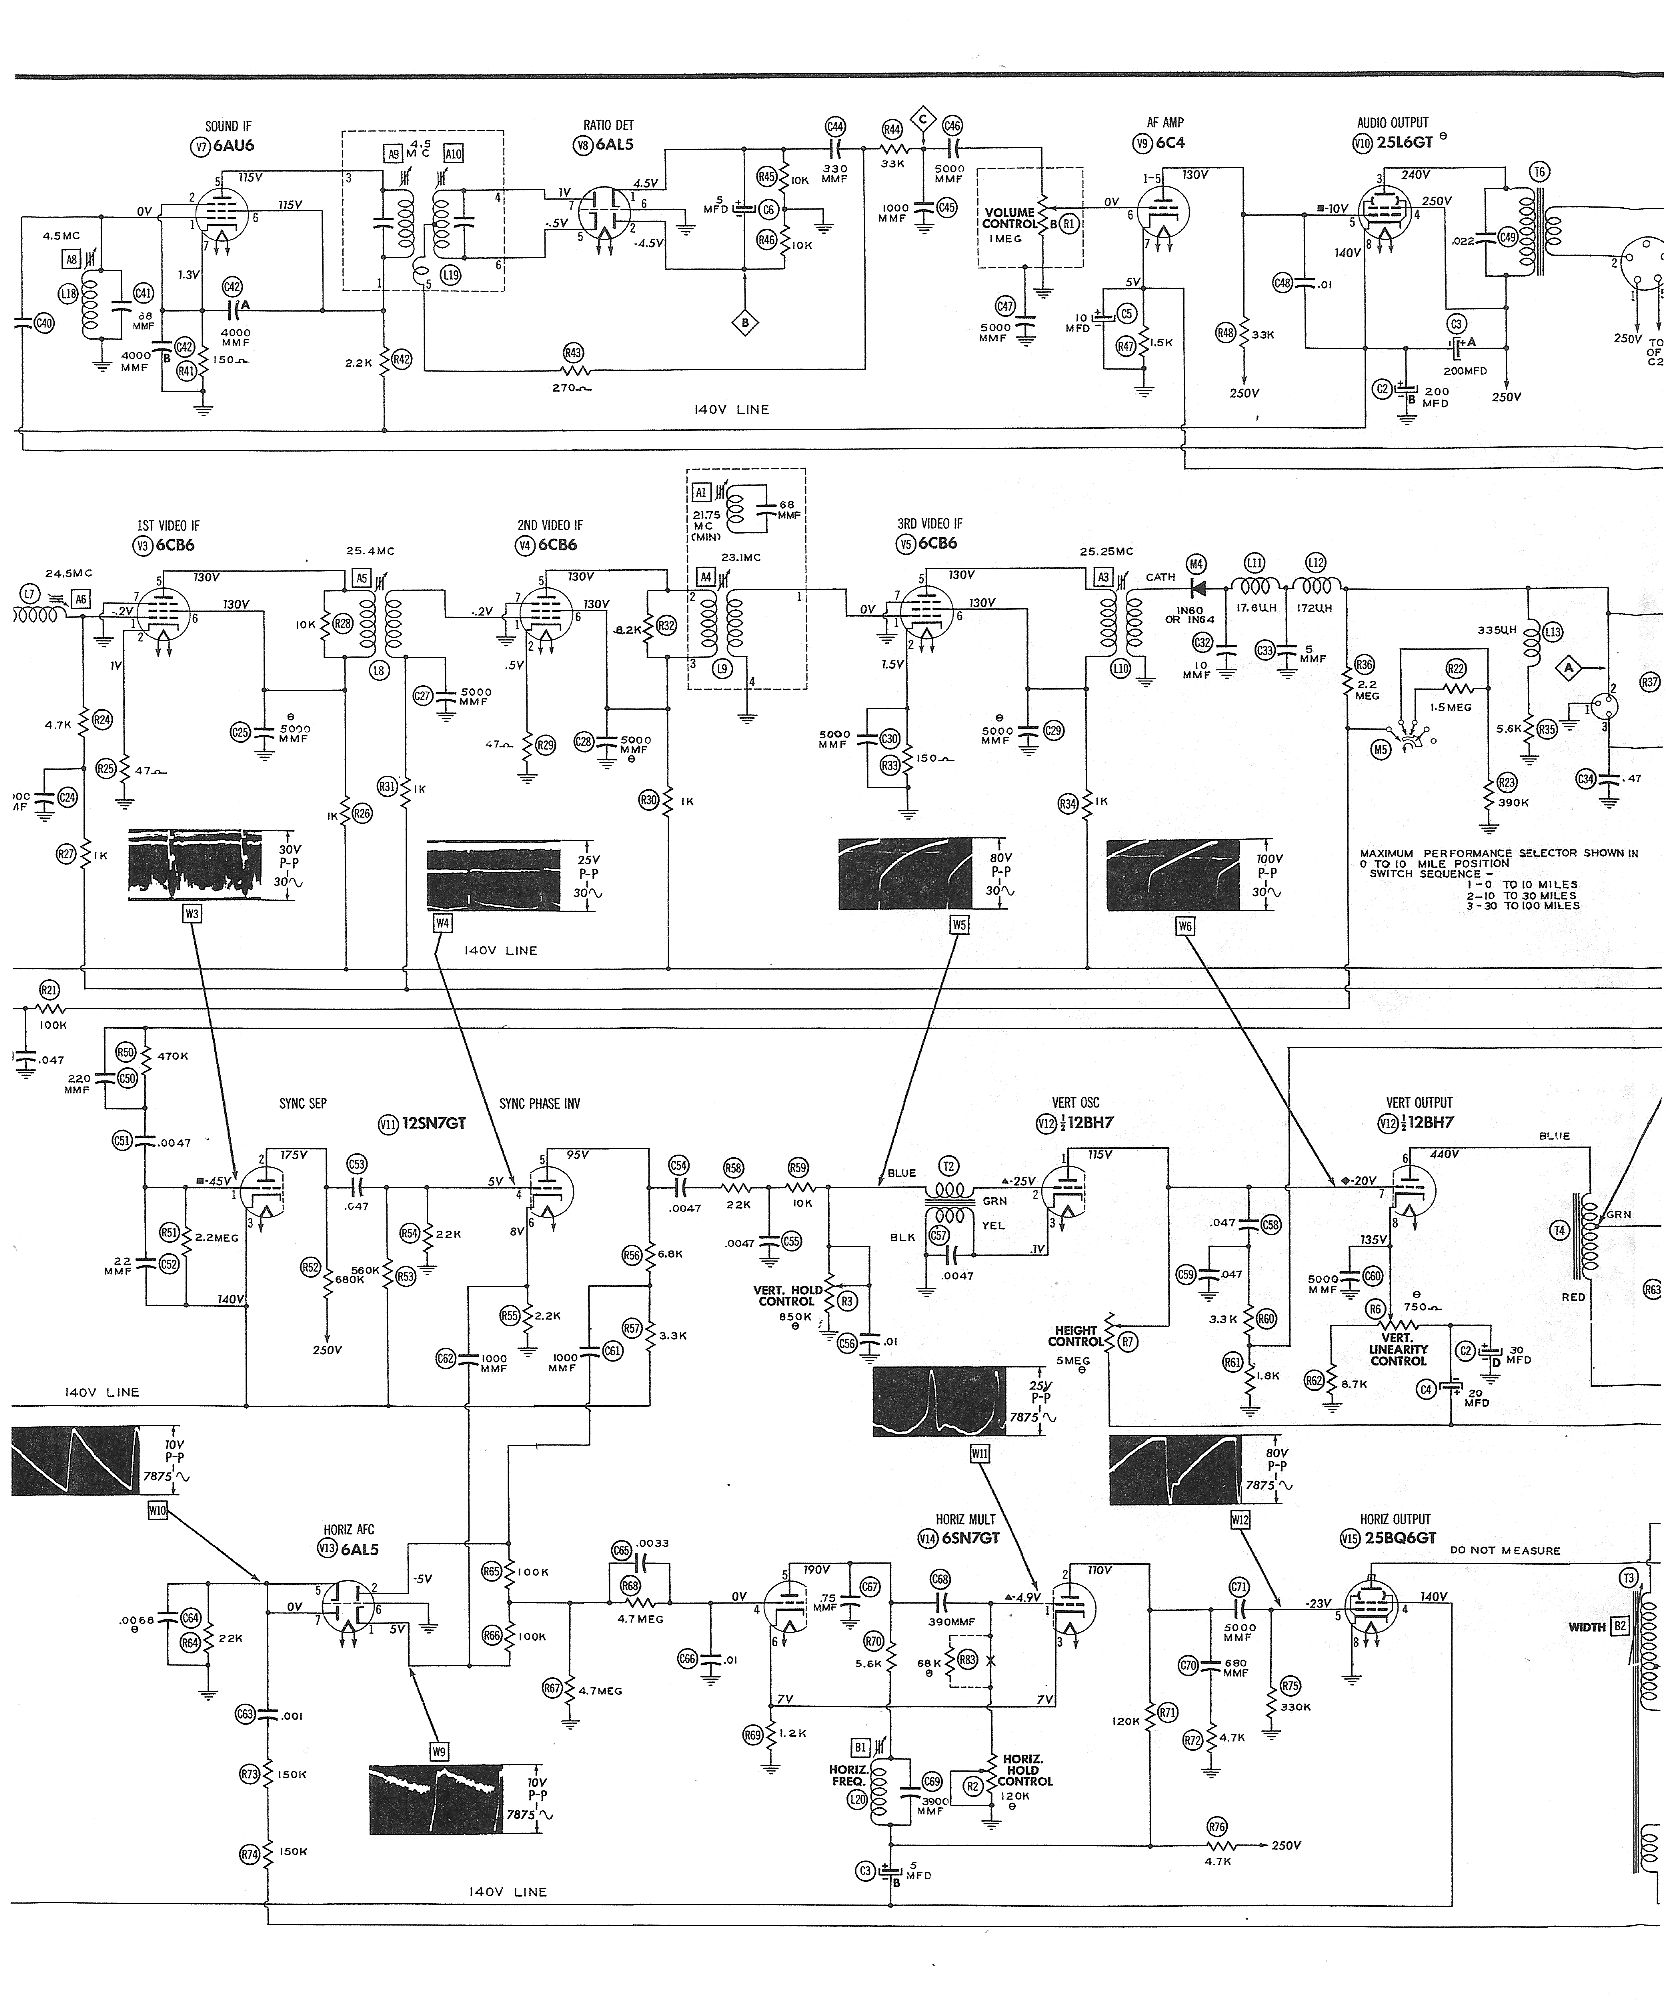 wiring diagram tv ears wiring diagram addwiring diagram tv ears 13 6 tierarztpraxis ruffy de \\u2022 rv tv wiring wiring diagram tv ears